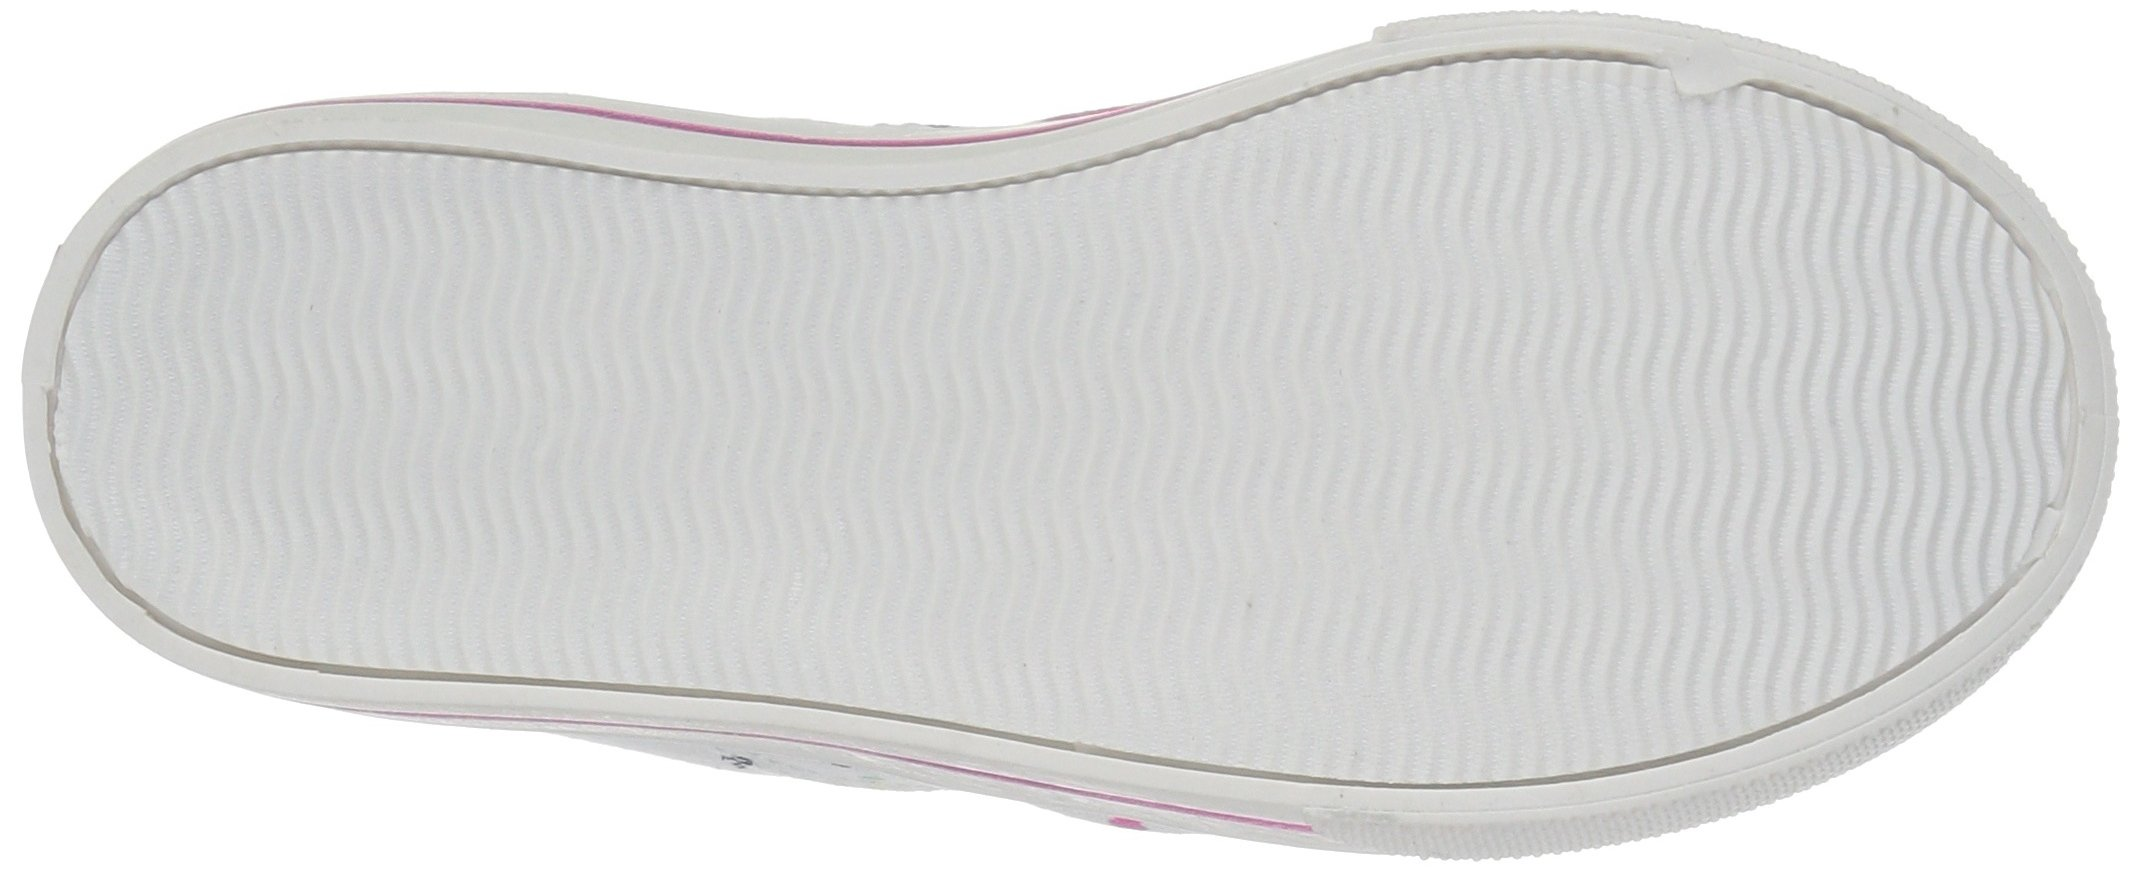 Carter's Piper Girl's Casual Sneaker, White/Print, 3 M US Little Kid by Carter's (Image #3)